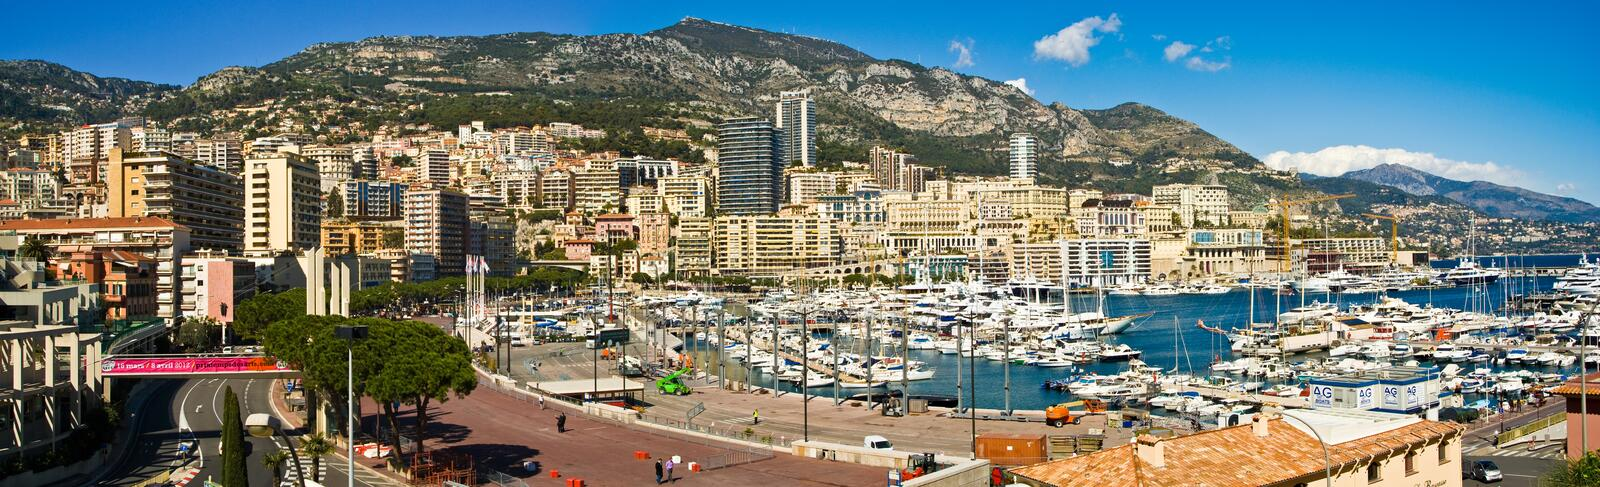 Download Monaco Monte Carlo editorial stock image. Image of majestic - 24331359